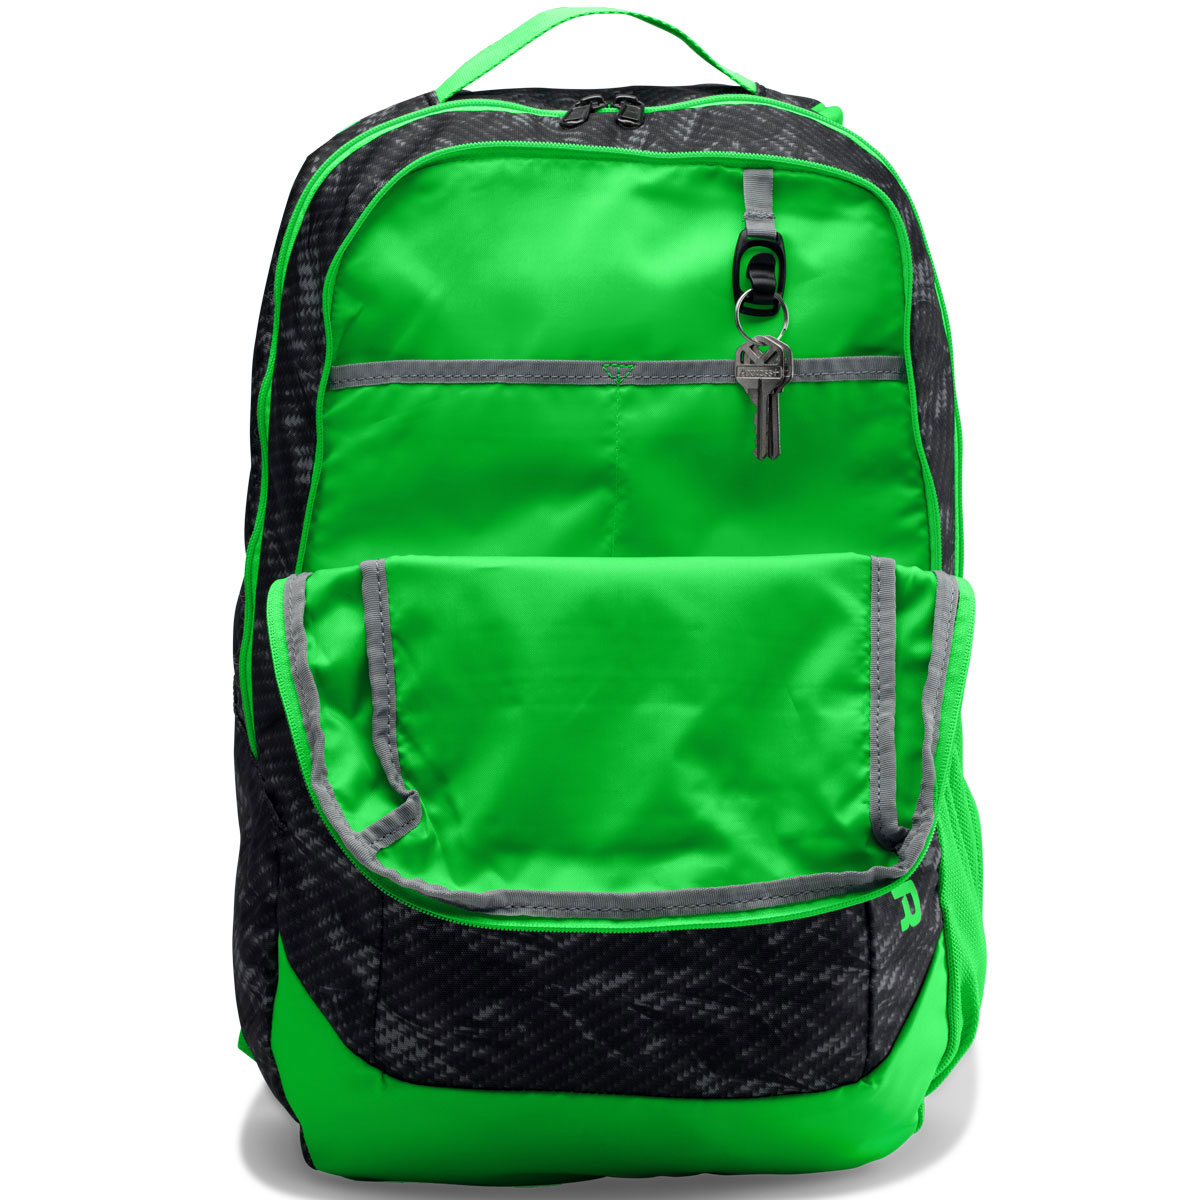 under armour hustle storm backpack cheap   OFF50% The Largest ... 446f4878e2